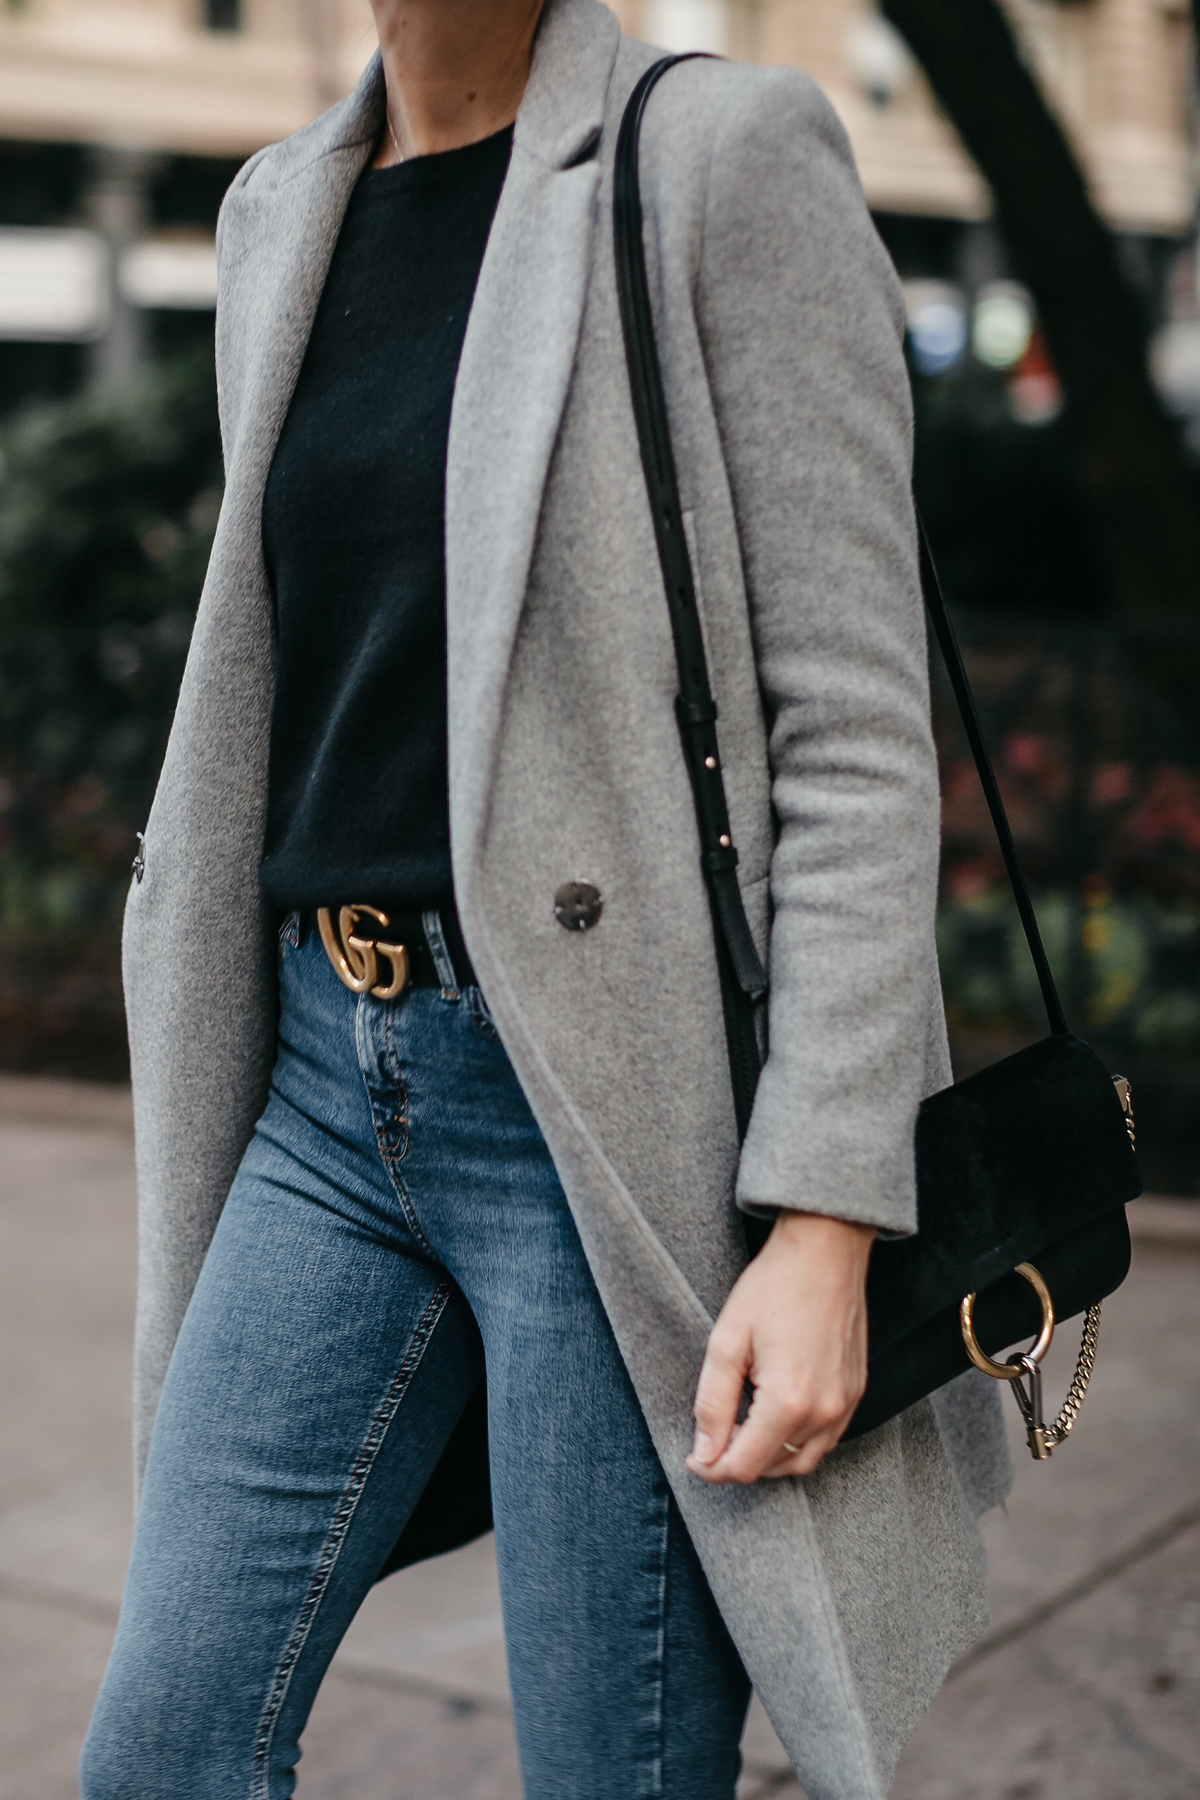 a3ebf343 Zara Grey Wool Coat Black Sweater Denim Skinny Jeans Gucci Marmont Belt  Choe Faye Black Handbag